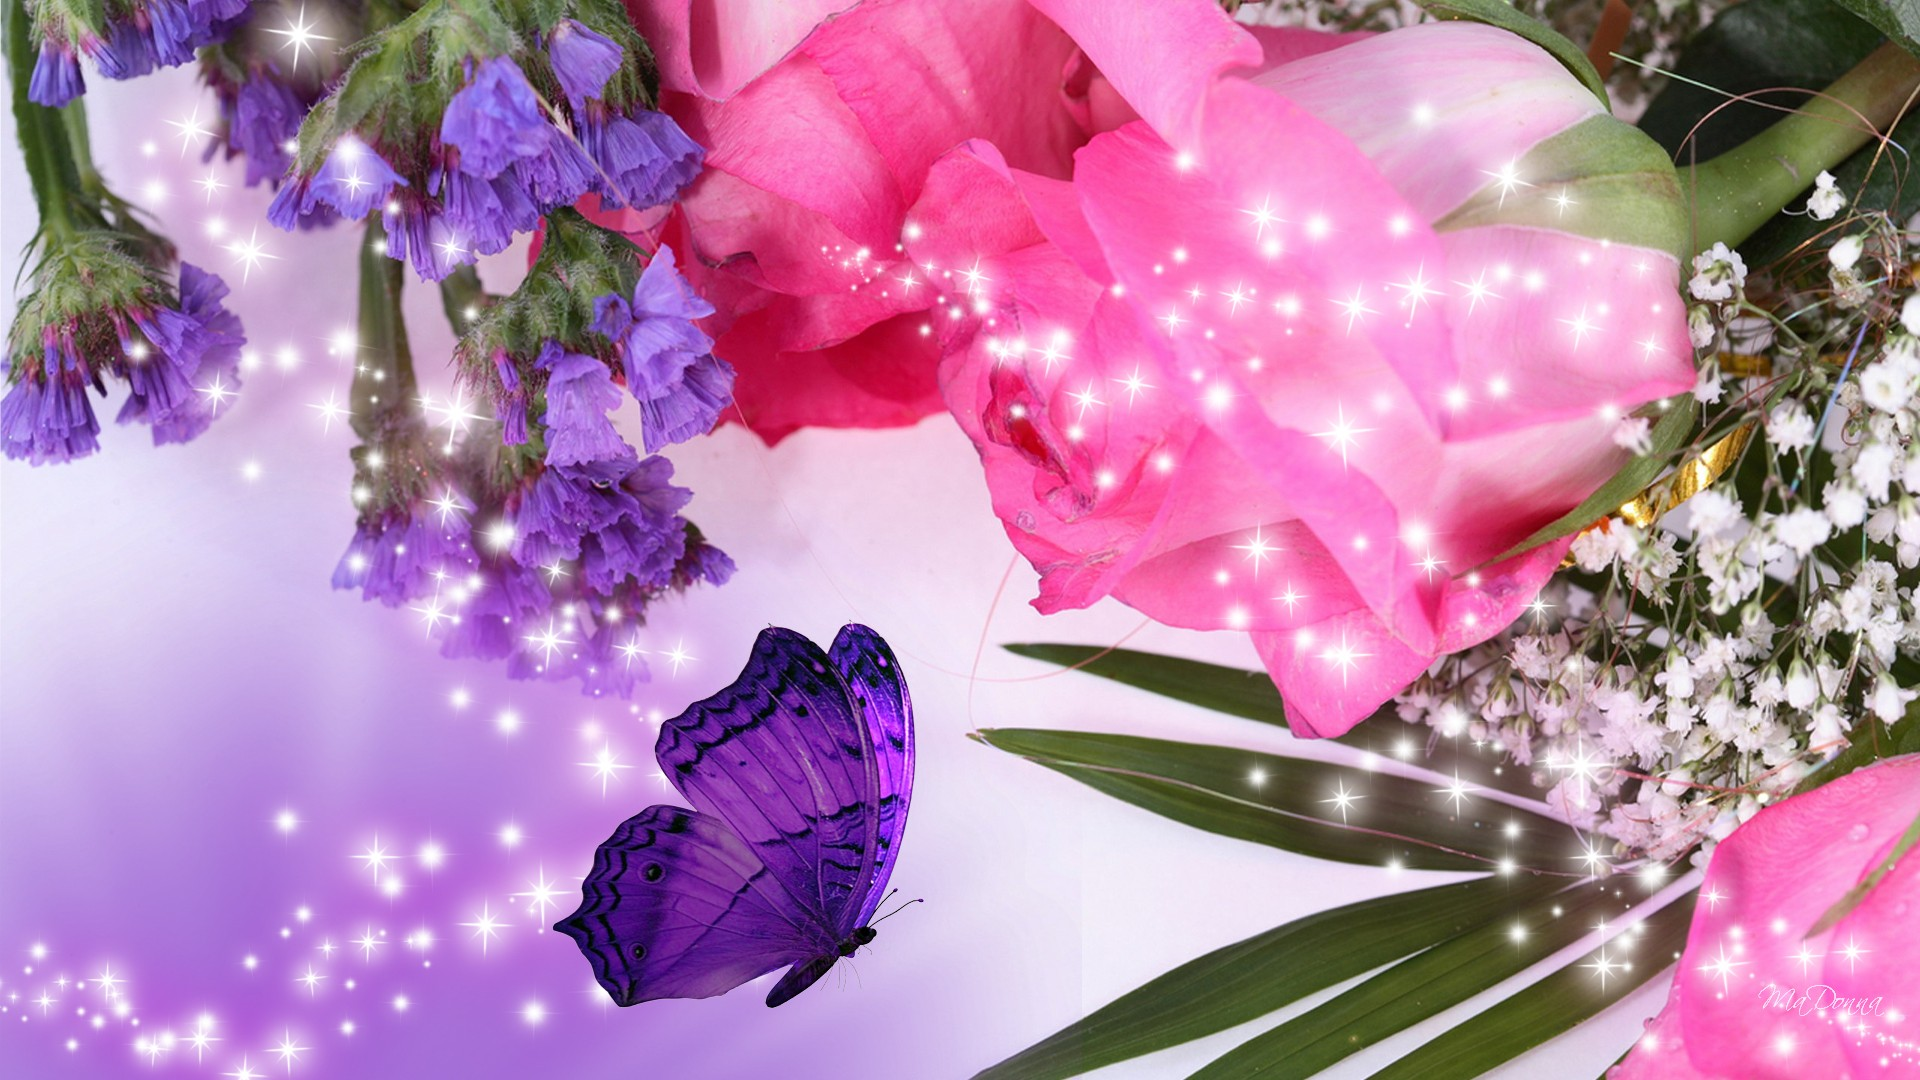 pink roses with purple butterfly][img]alignnone size full wp image 1920x1080